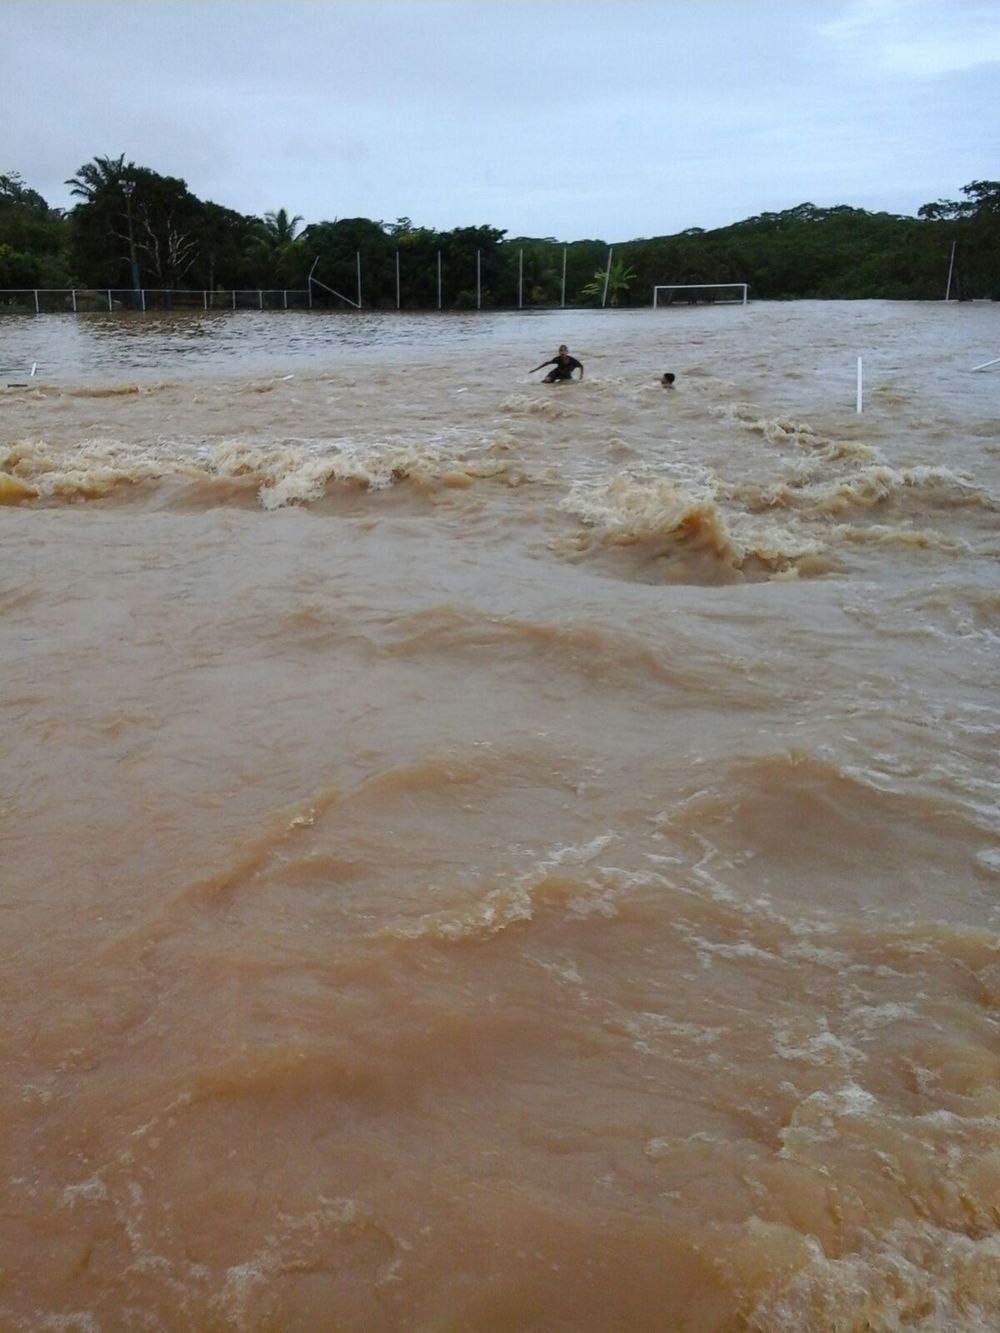 The raging flood waters wash over the Arena Massangana.